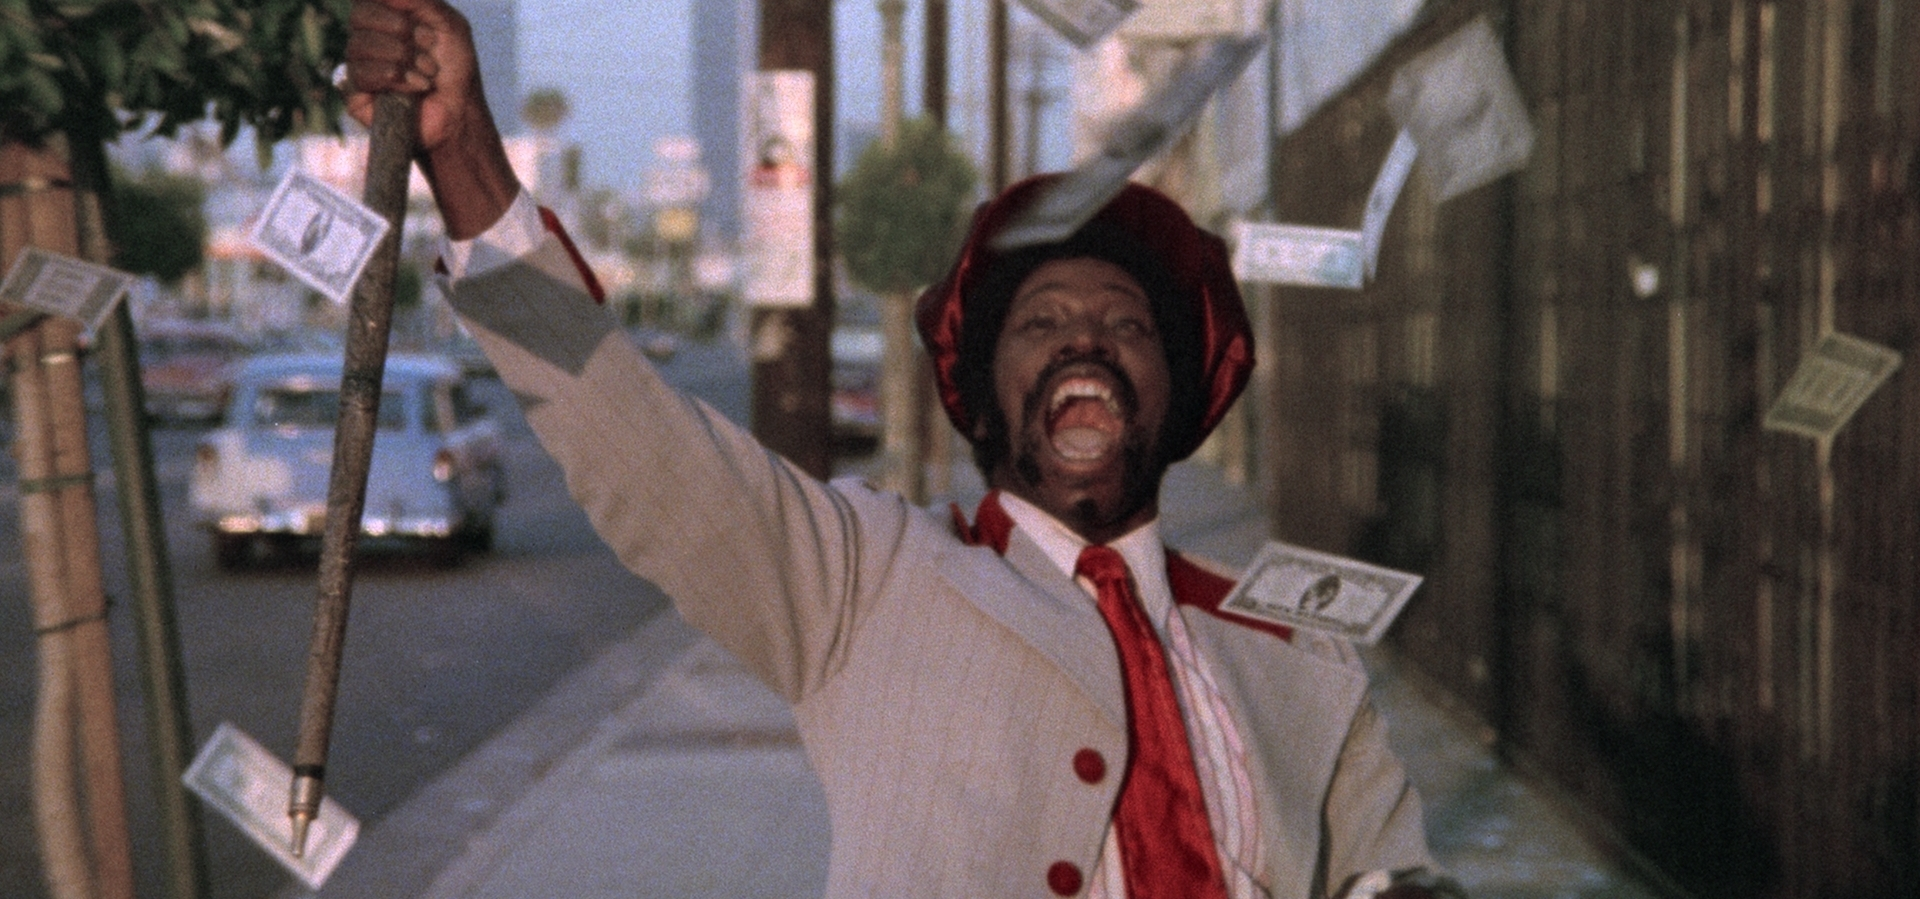 petey wheatstraw, dolemite, rudy ray moore, blaxploitation, podcast, talk hard